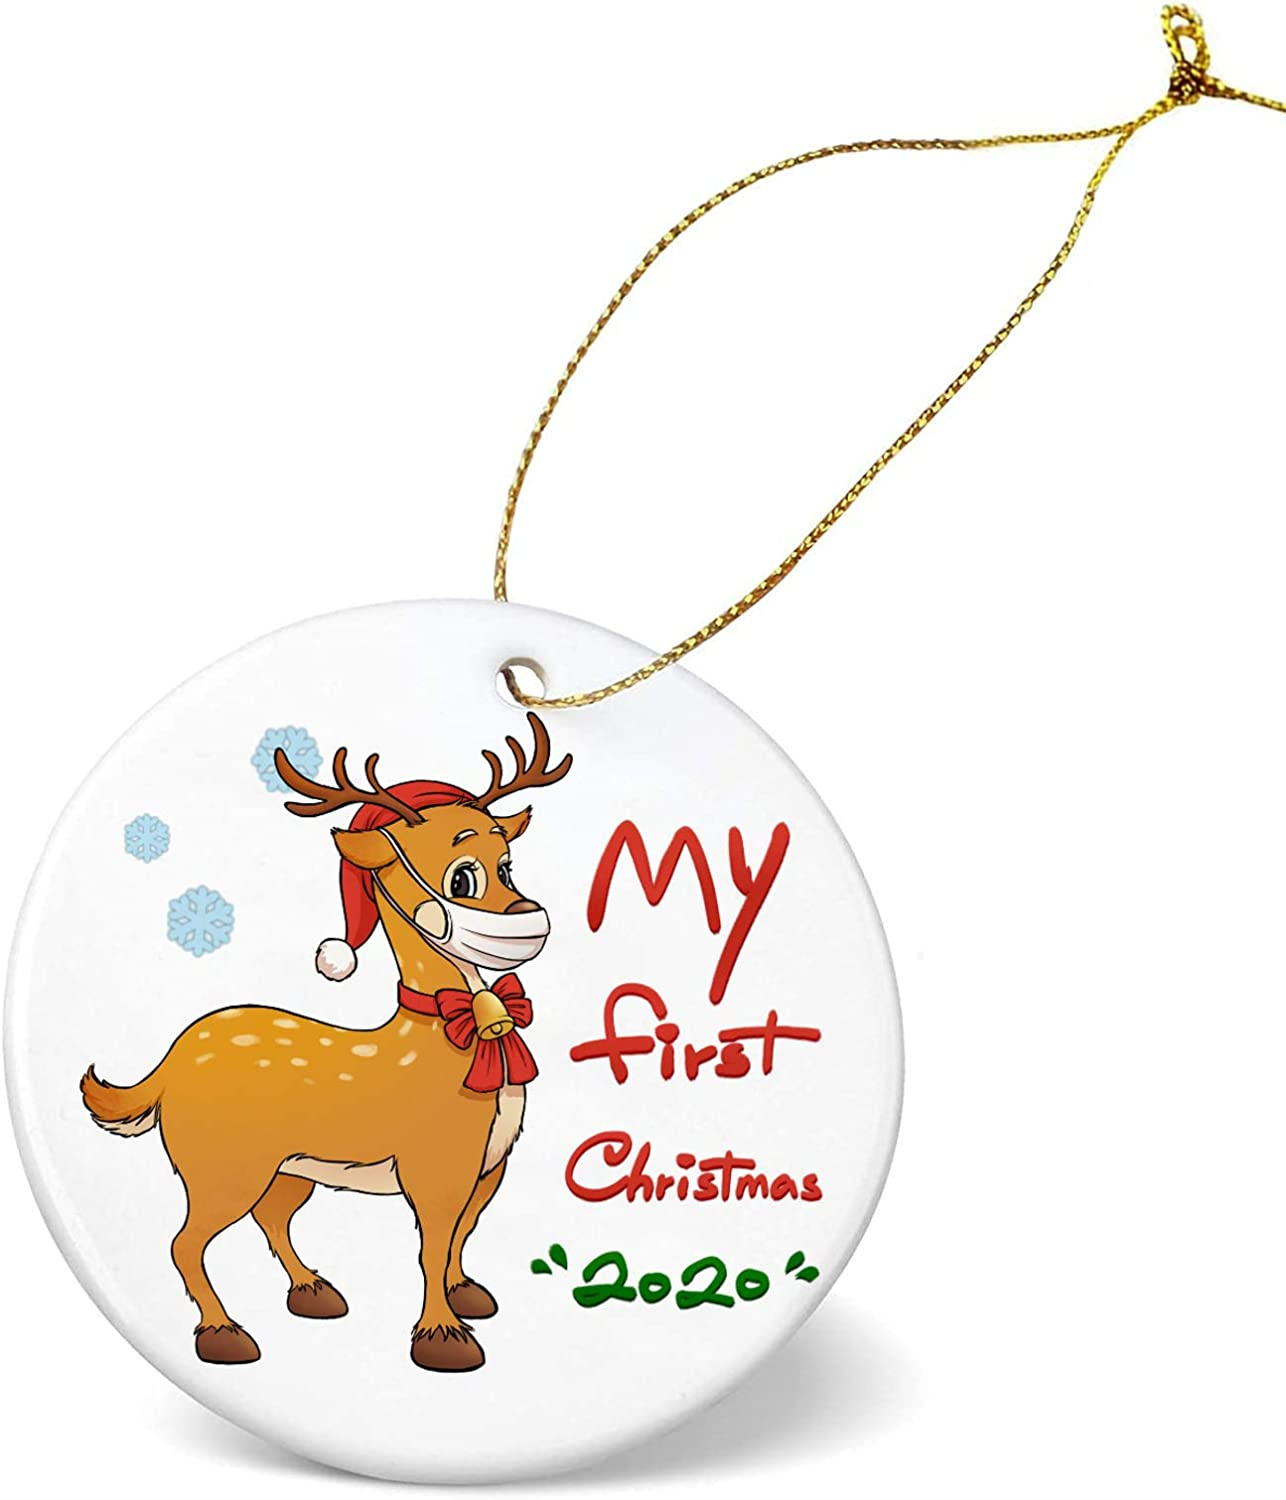 Christmas Ornaments 2020,My First Christmas 2020,Cute Elk Christmas Decorations, Friends Family, Home Indoor Outdoor Dress up Hanging Ornaments